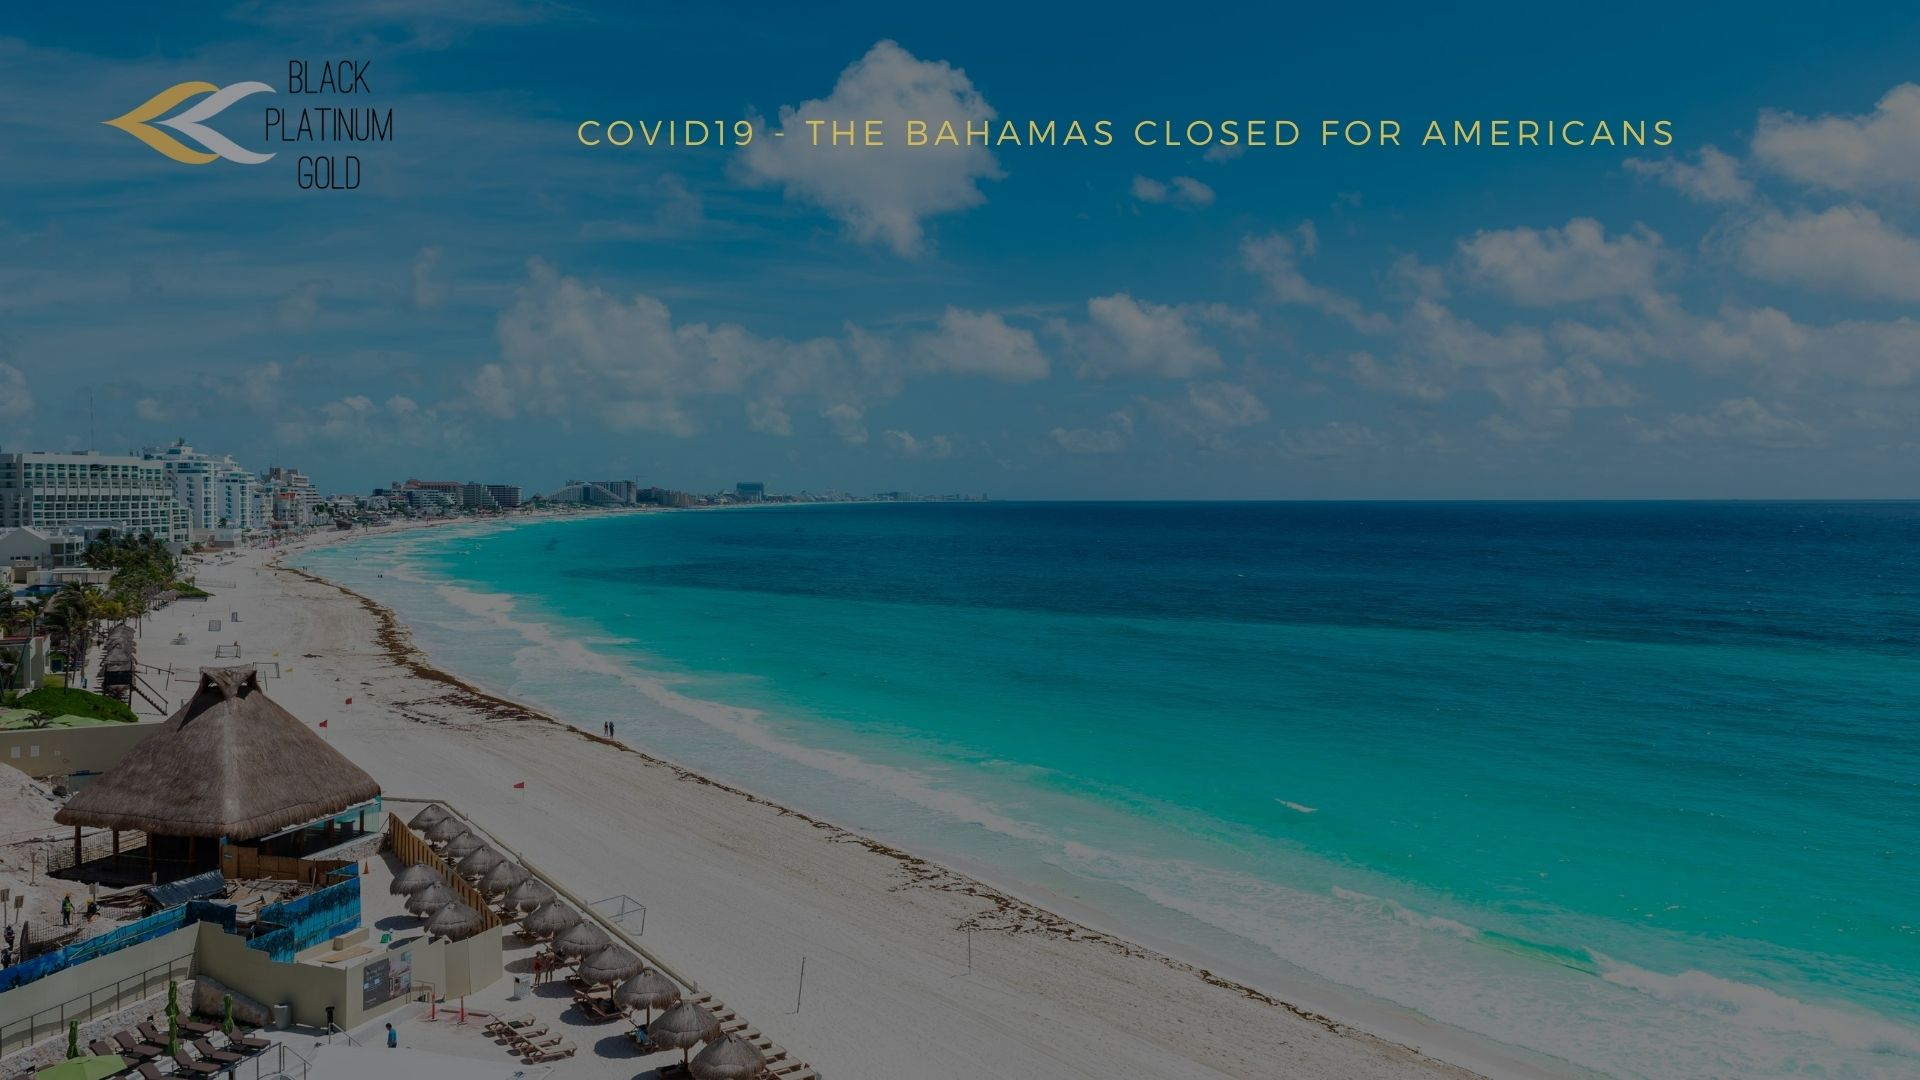 COVID19 - The Bahamas closed for Americans - By Black Platinum Gold- black platinum gold(2)